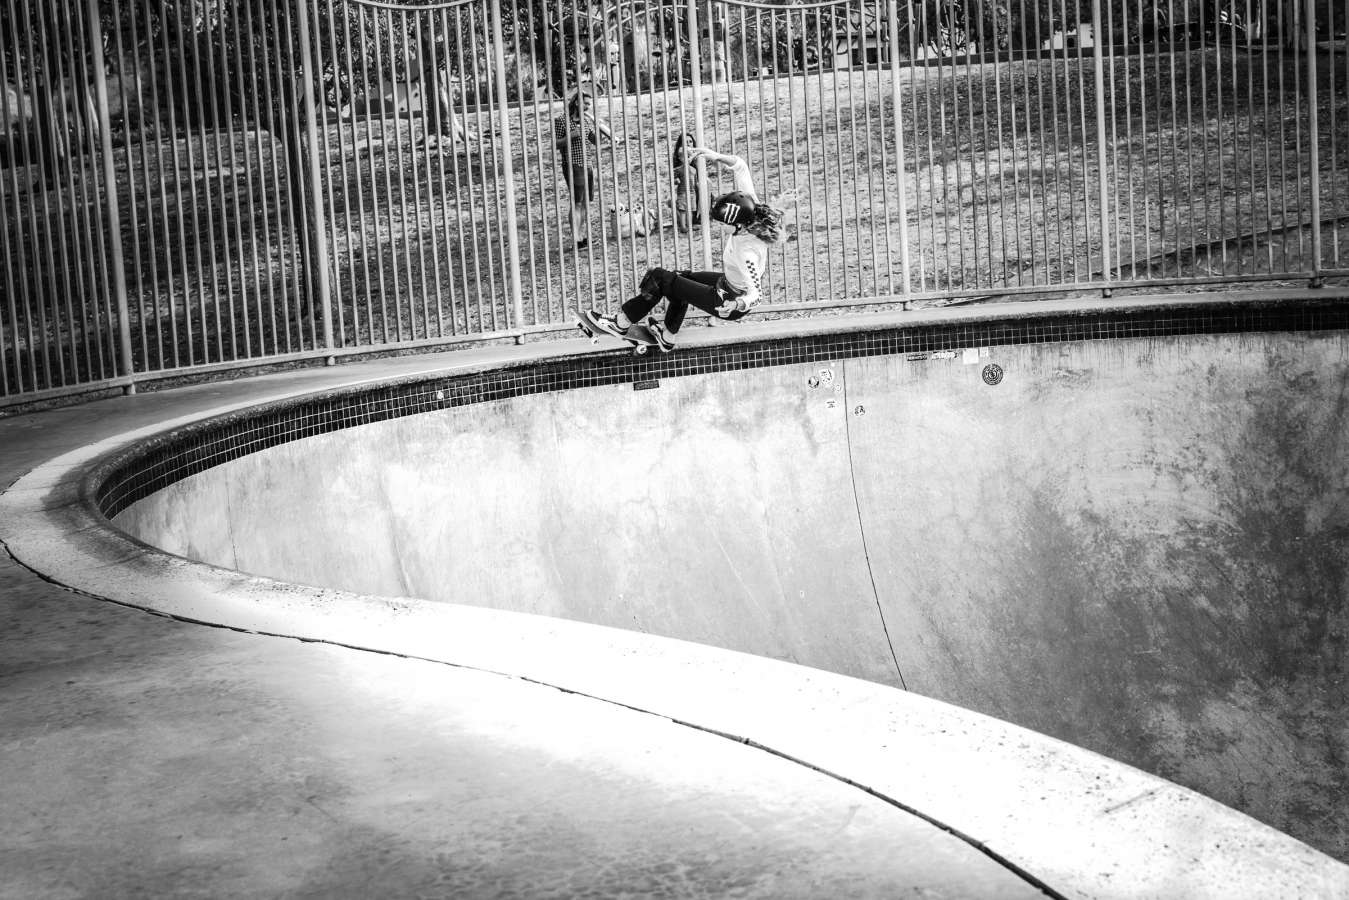 Image of Monster skateboarder Lizzie Armanto